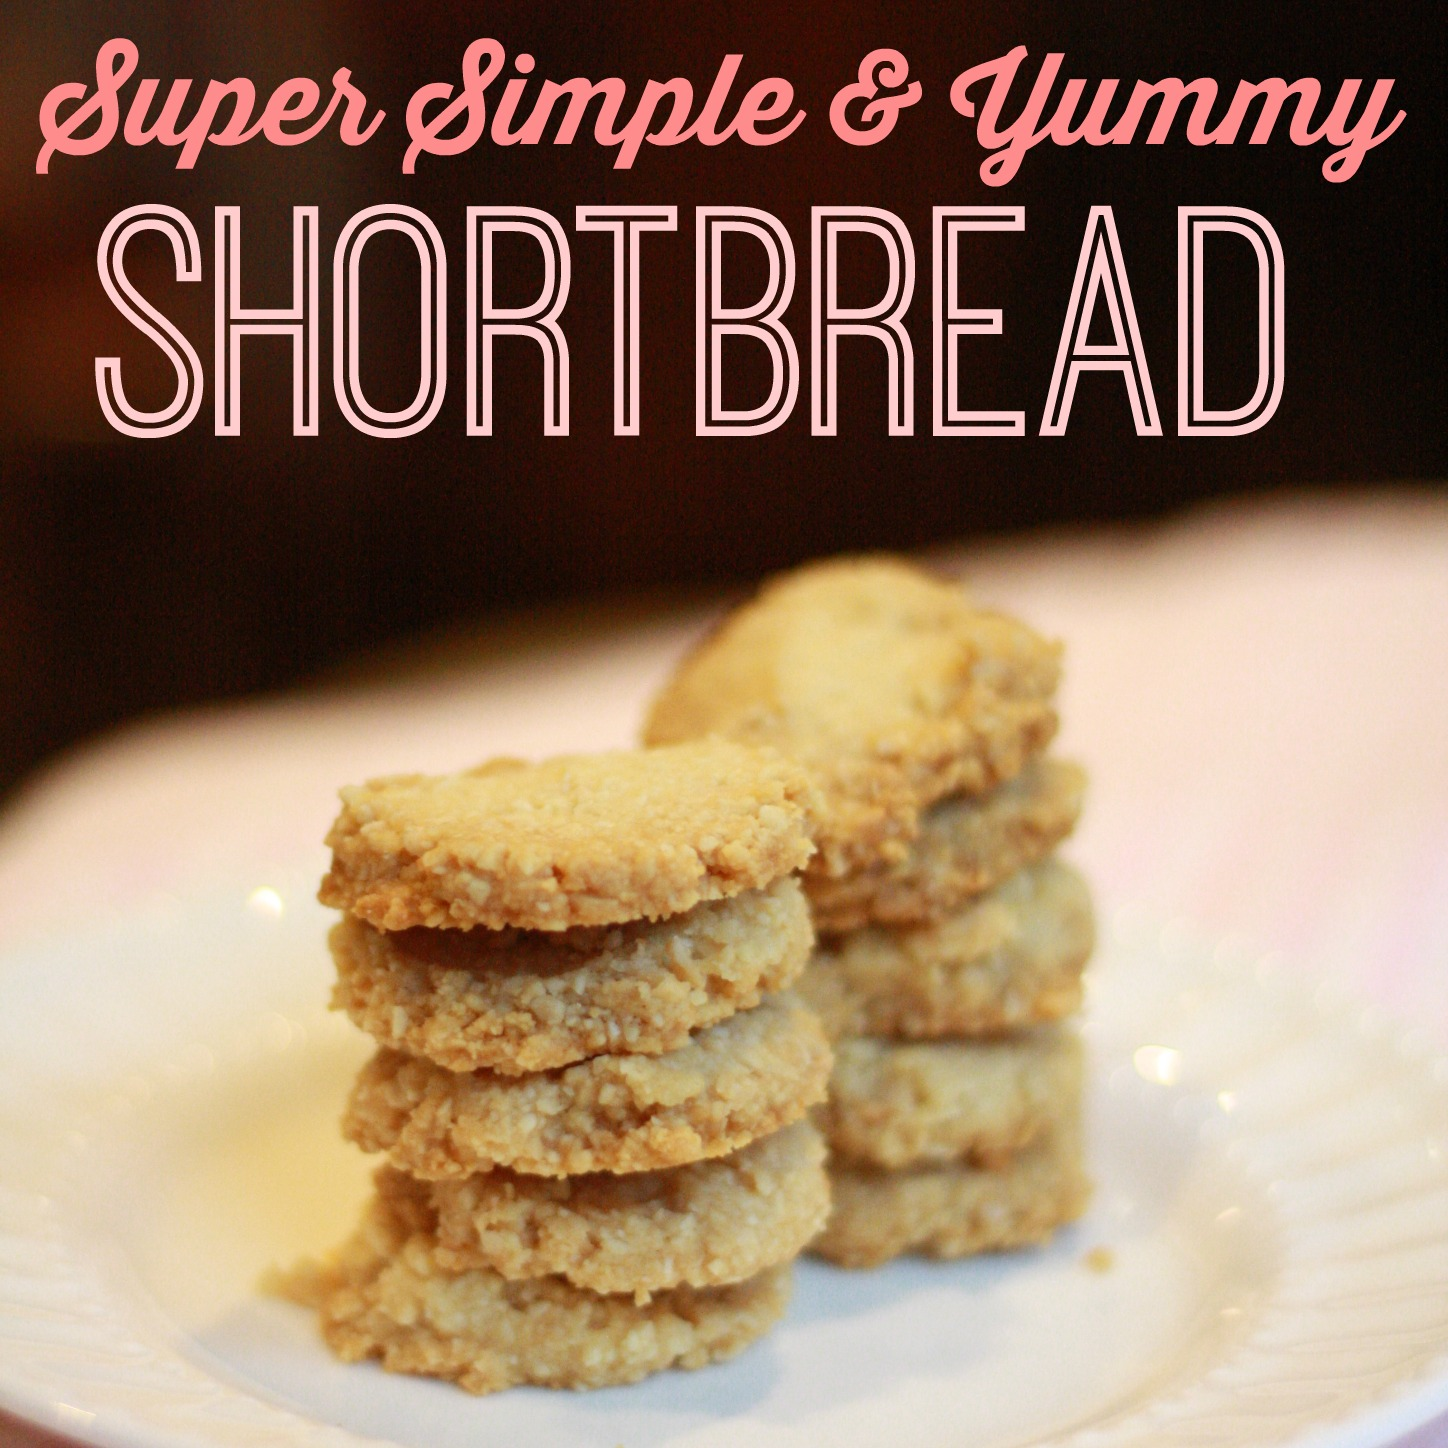 Super Simper Yummy Shortbread s